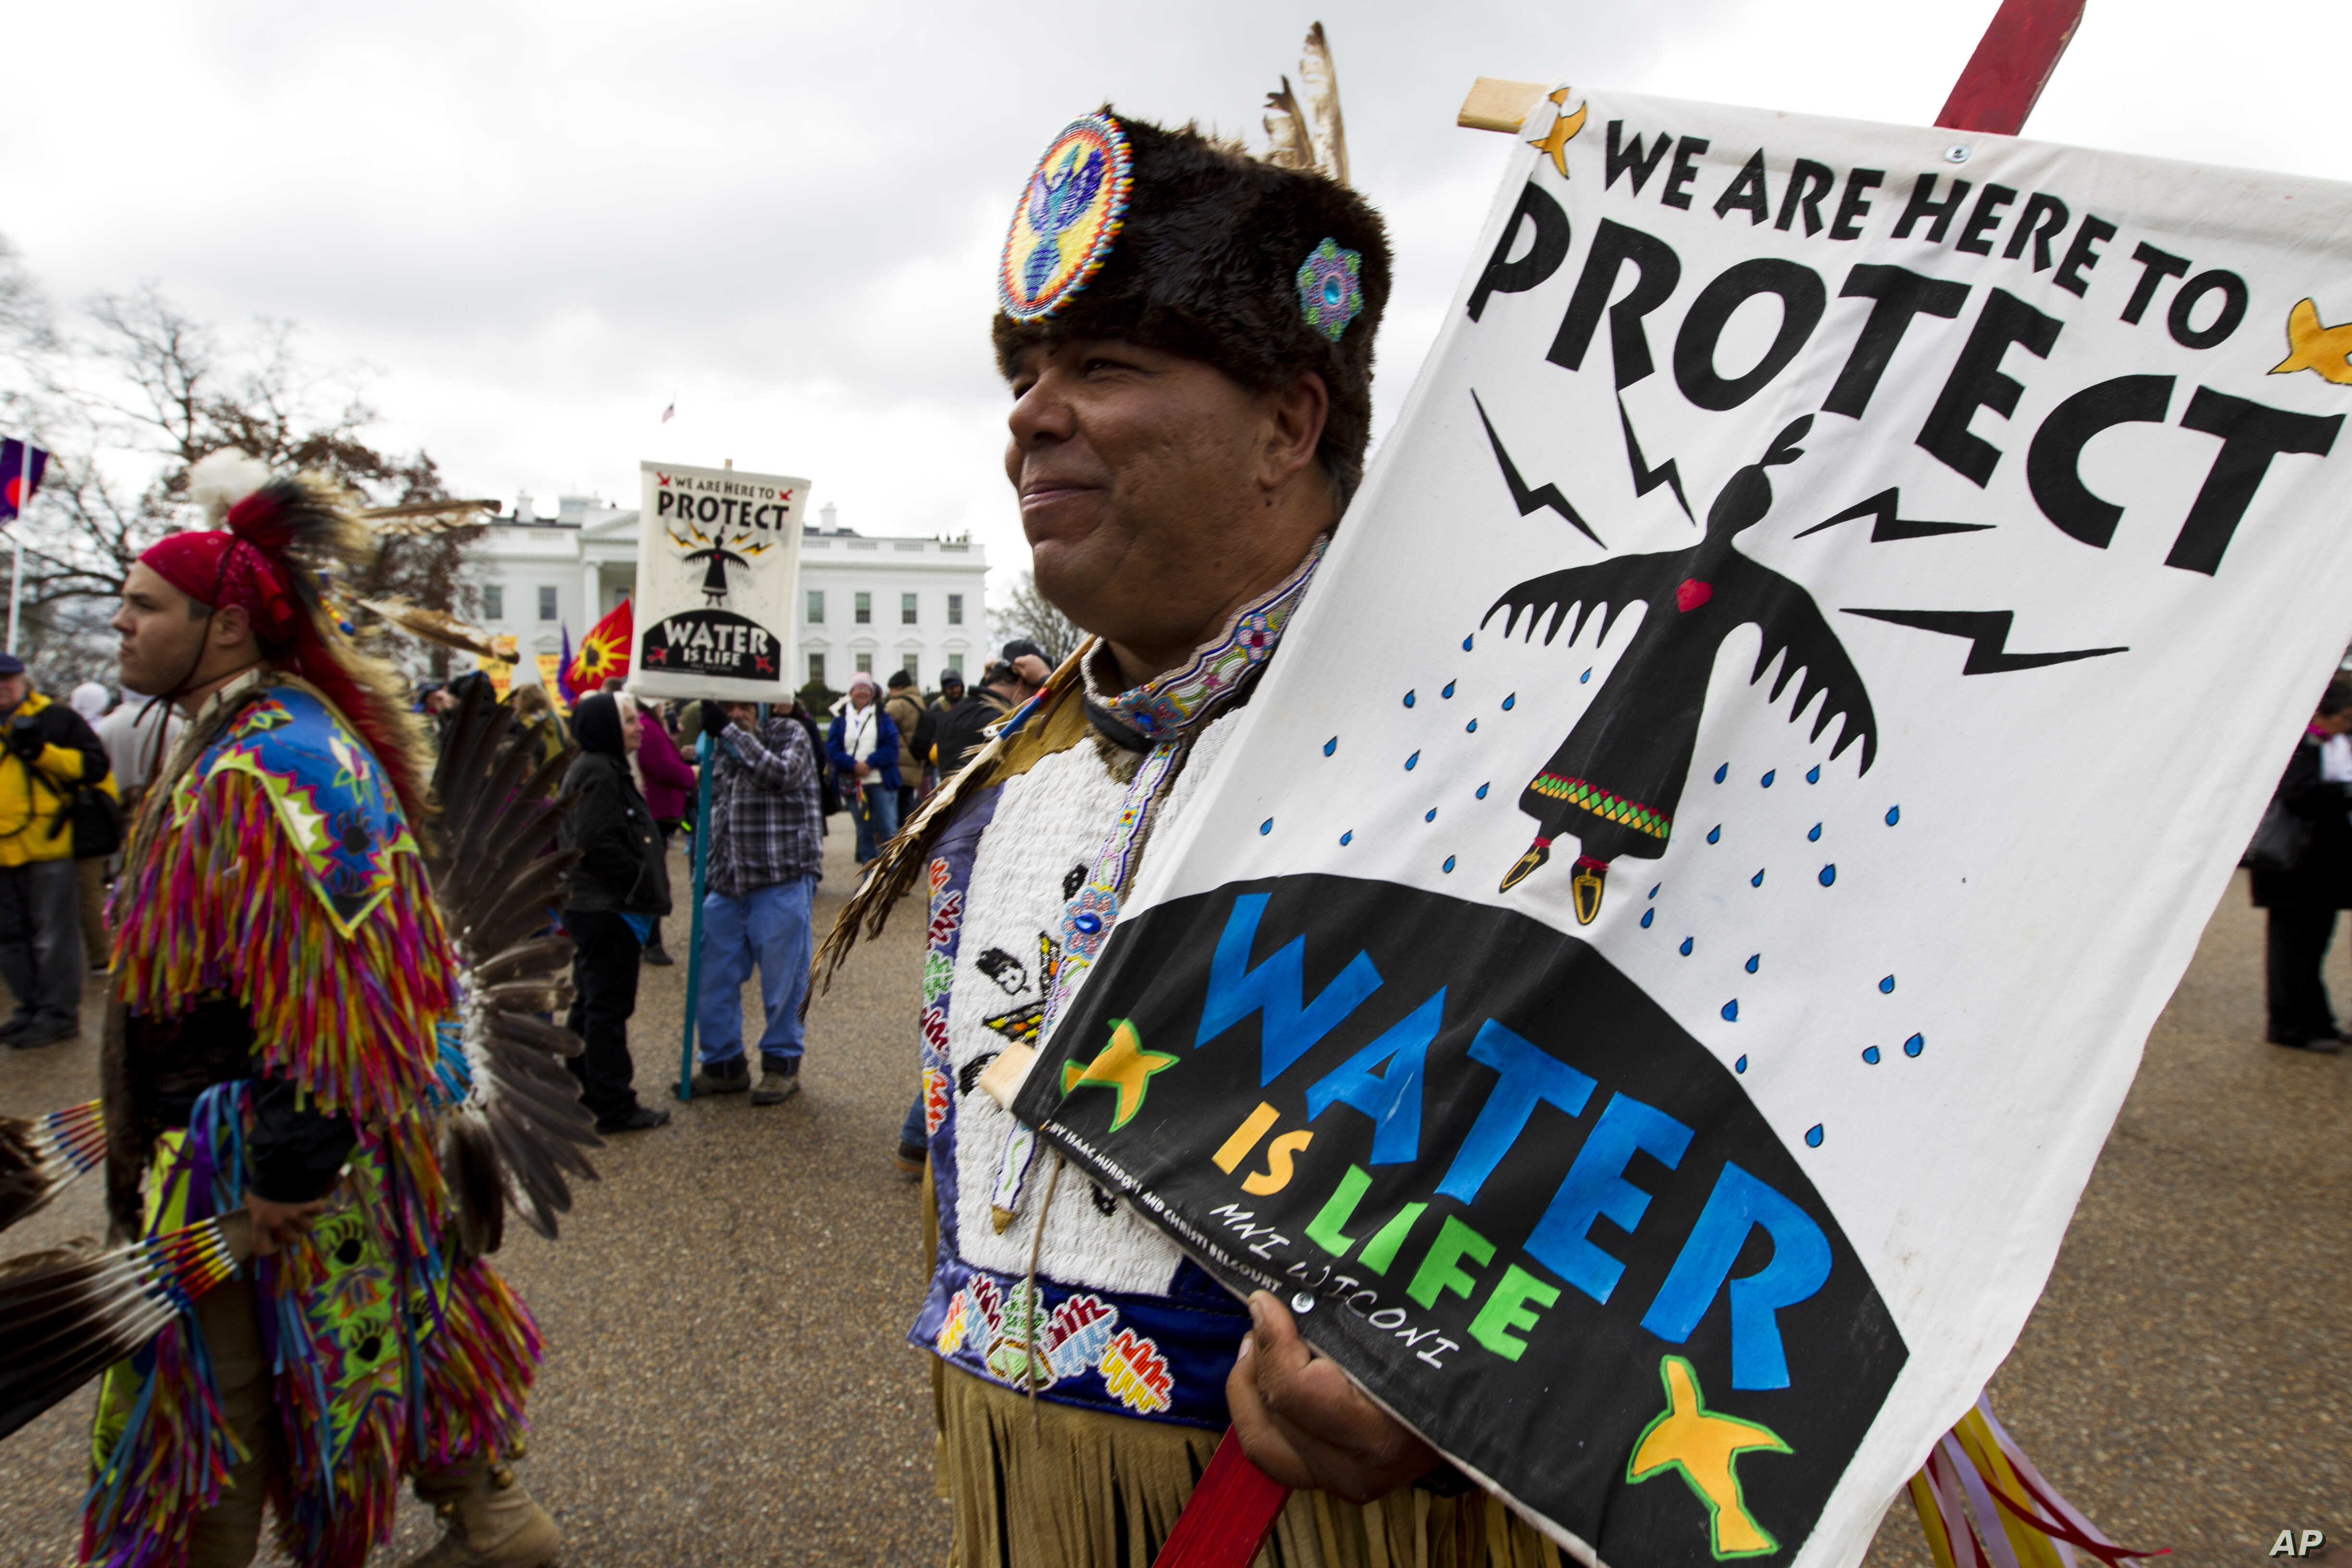 America Indians and their supporters protest outside of the White House, March 10, 2017, in Washington, to rally against the construction of the disputed Dakota Access oil pipeline.